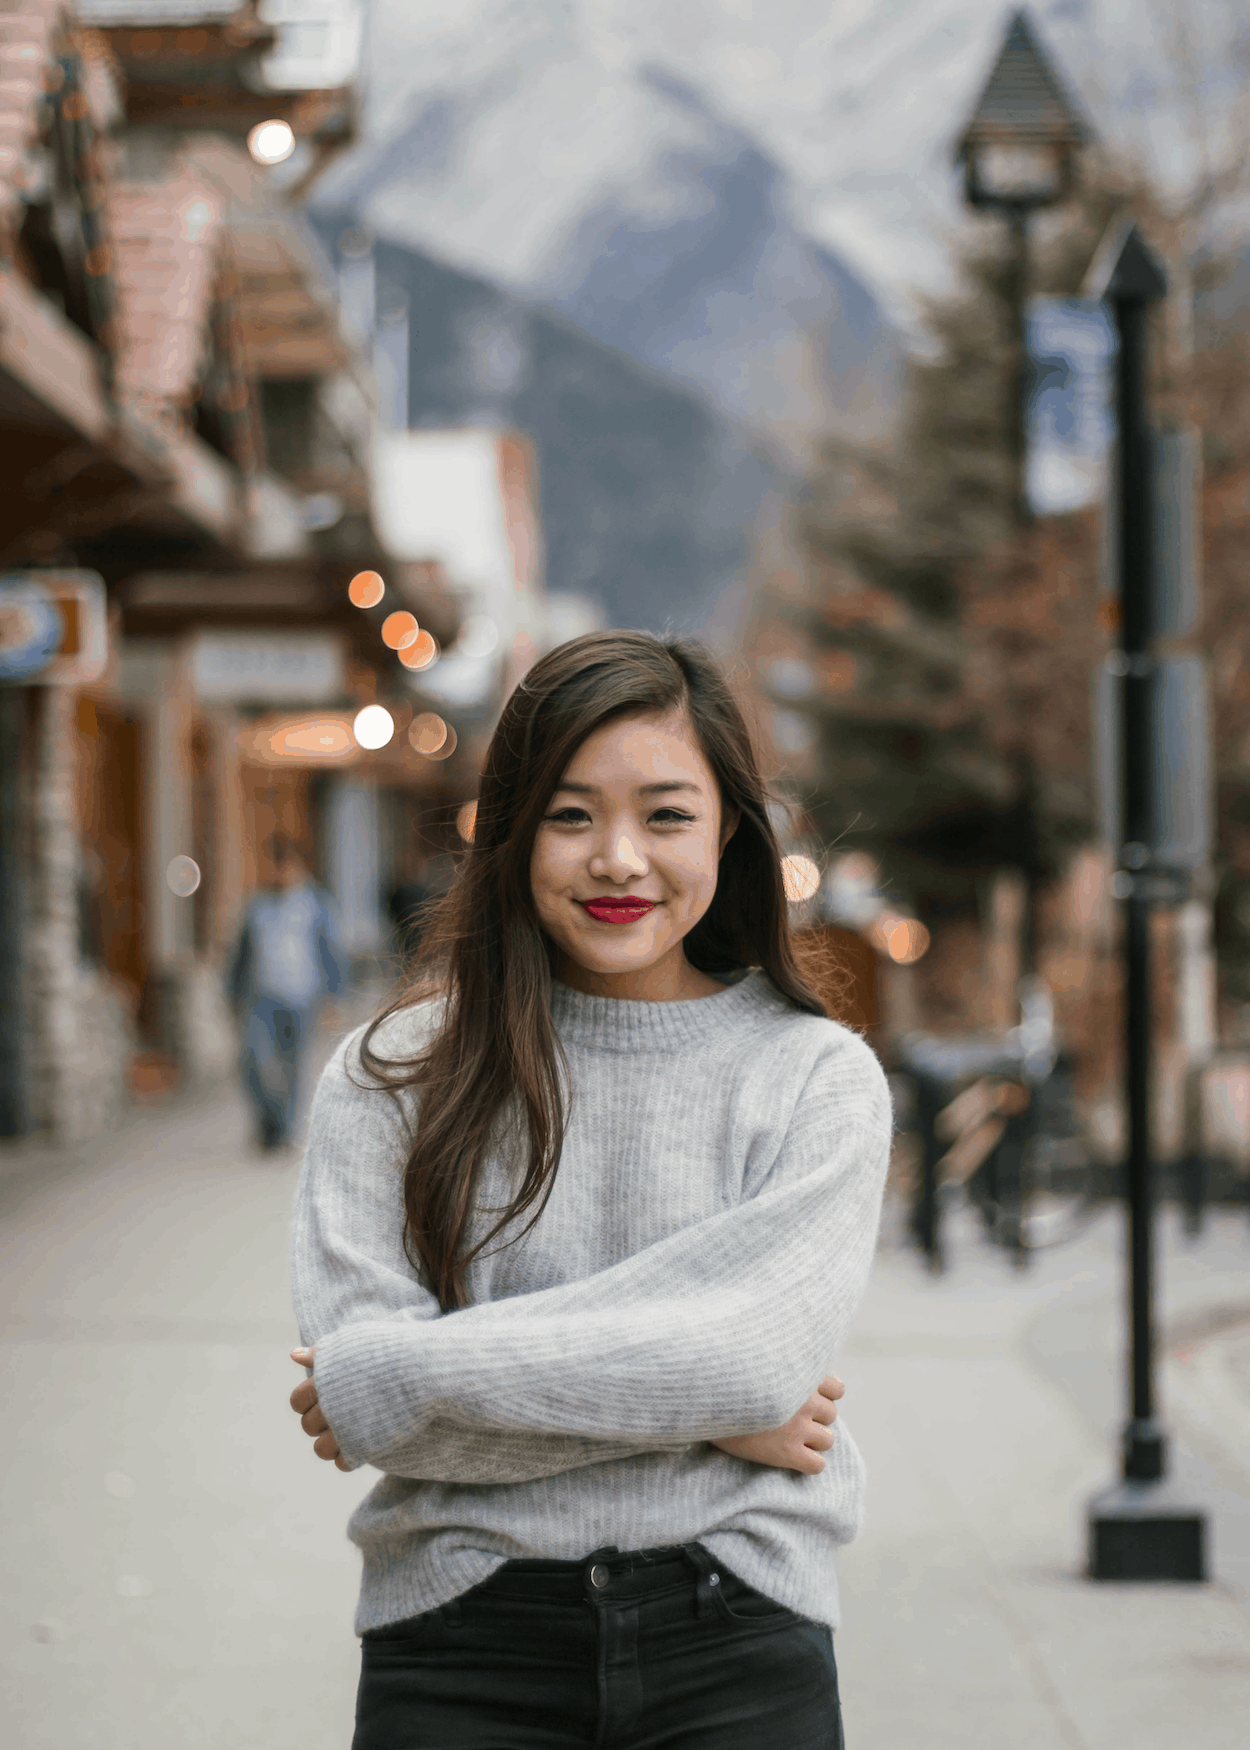 Top things to do in Jasper and Banff National Park in Banff, Alberta in the winter | Banff, Alberta travel guide | what to do in Jasper & Banff, Canada | best Banff travel itinerary | best places to visit in Canada during the winter | where to go in Canada during the holidays | how to spend 3 days in Banff National Park | Diary of a Toronto Girl, a Toronto lifestyle blog